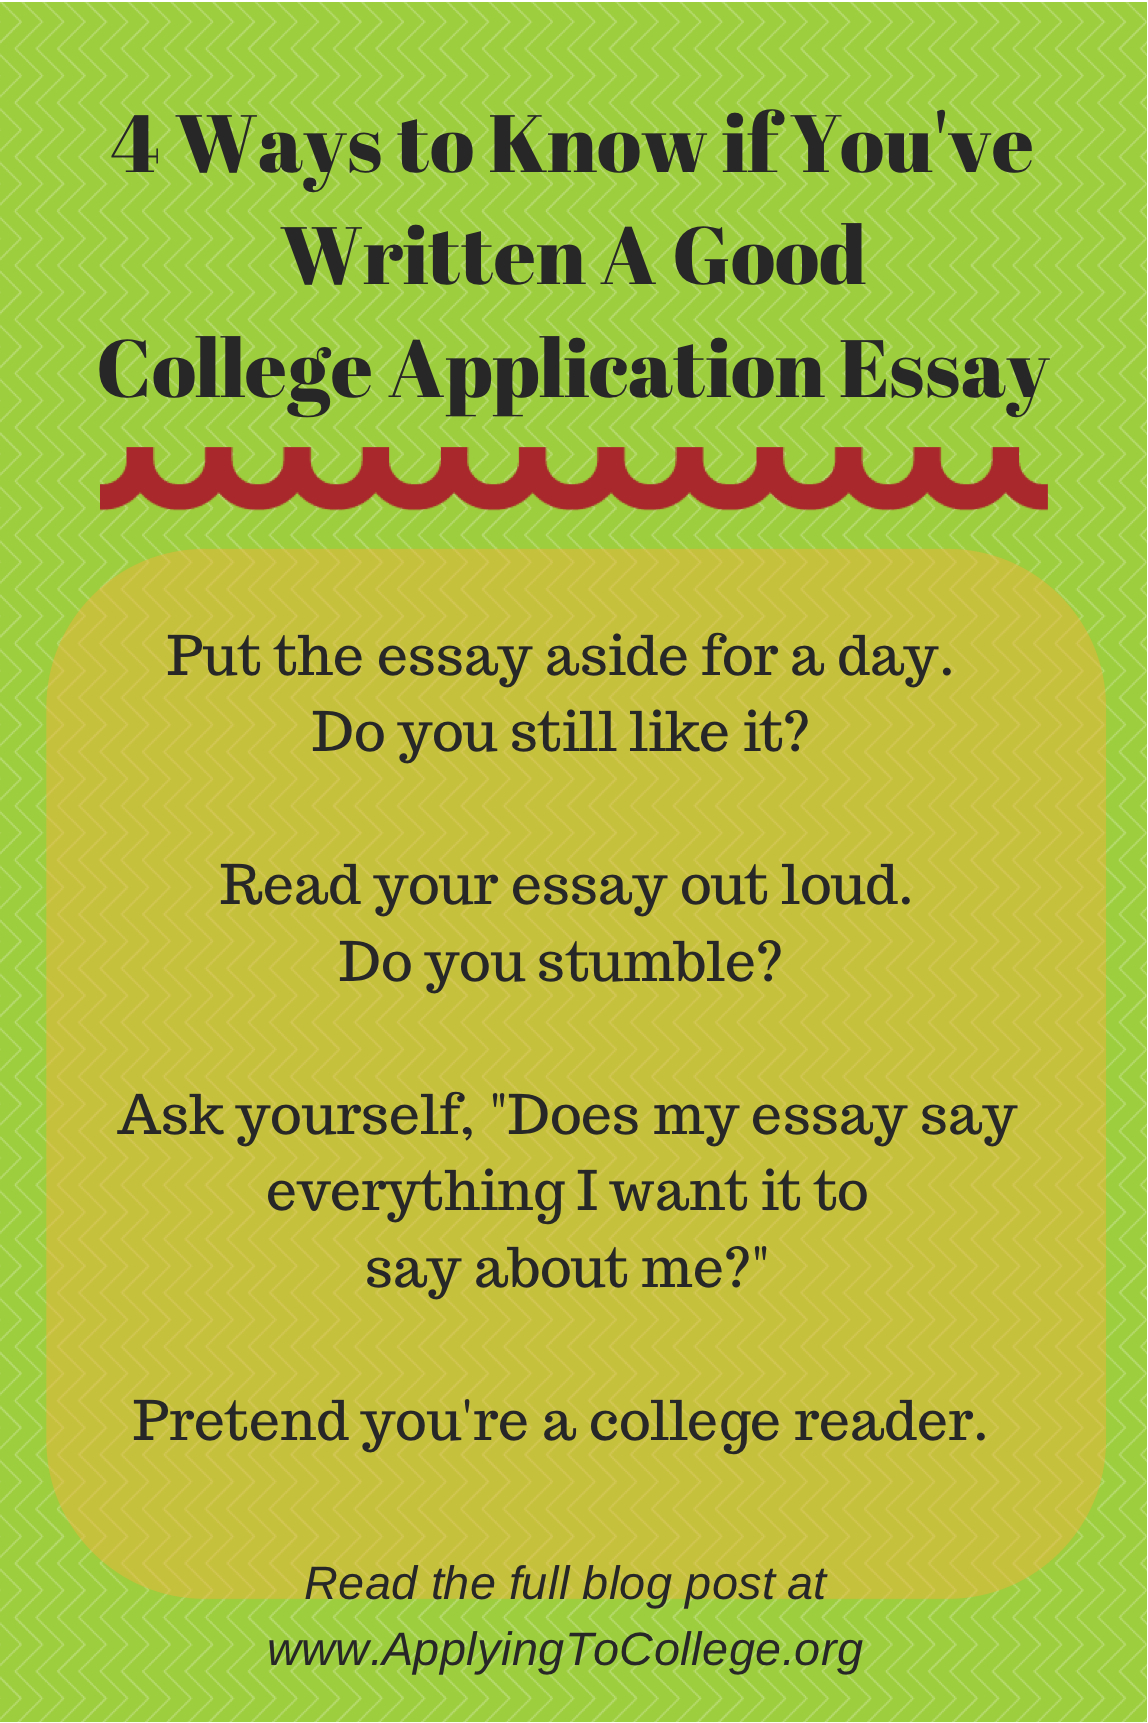 write my college admissions essay College admissions officers read thousands of college application essays these tips and strategies can help you make a strong impression.